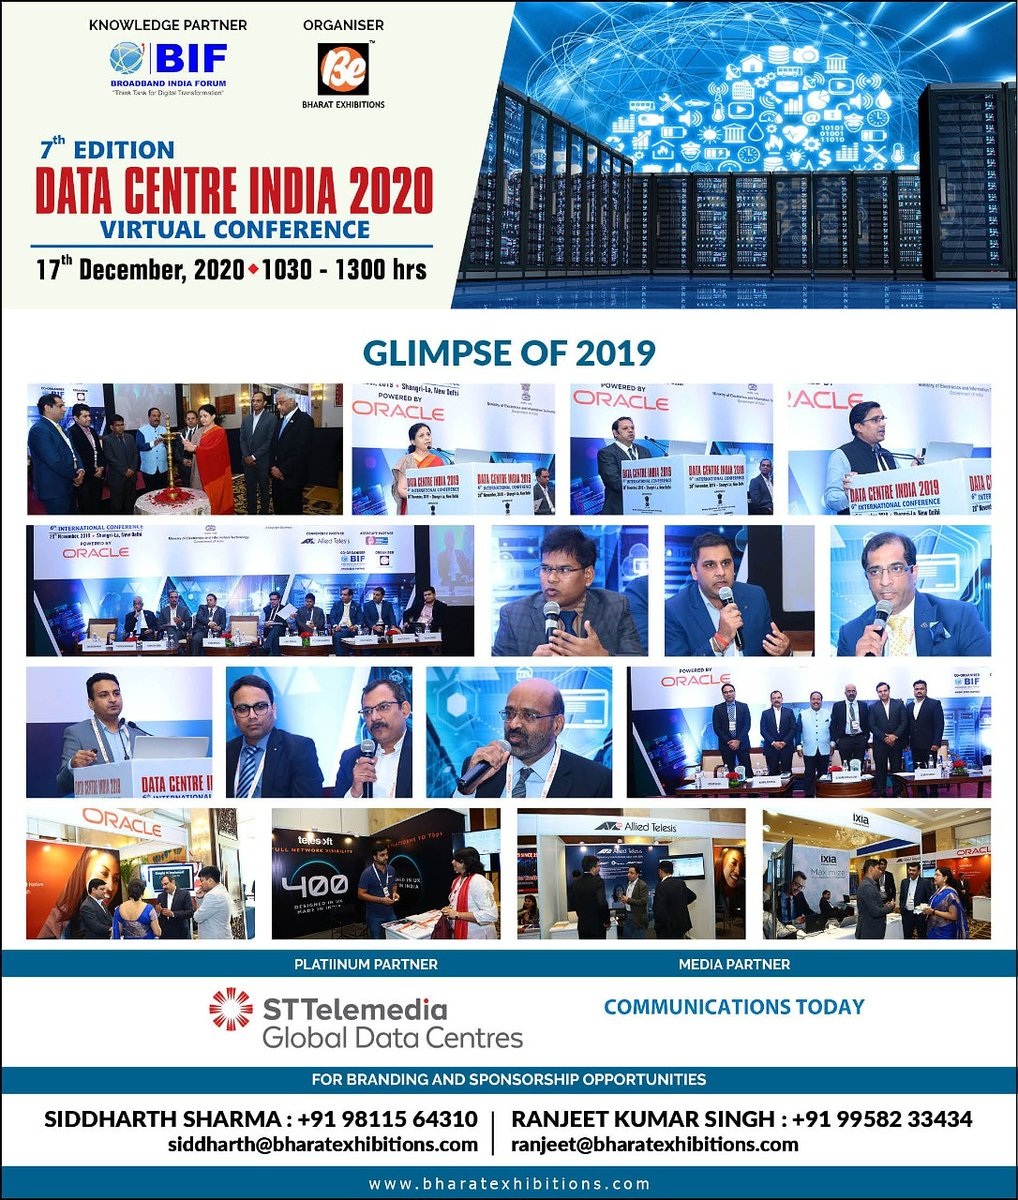 STTELEMEDIA GLOBAL DATA CENTRES joins as PLATINUM PARTNER at 7th edition of Data Centre India 2020 Virtual Conference on 17th December 2020 at 1030 - 1330 Hrs. #datacenter #datacentre #sdn #softwaredefined #sdwan #clouddata #branding #hybridcloud #bharatexhibitions #enterprise